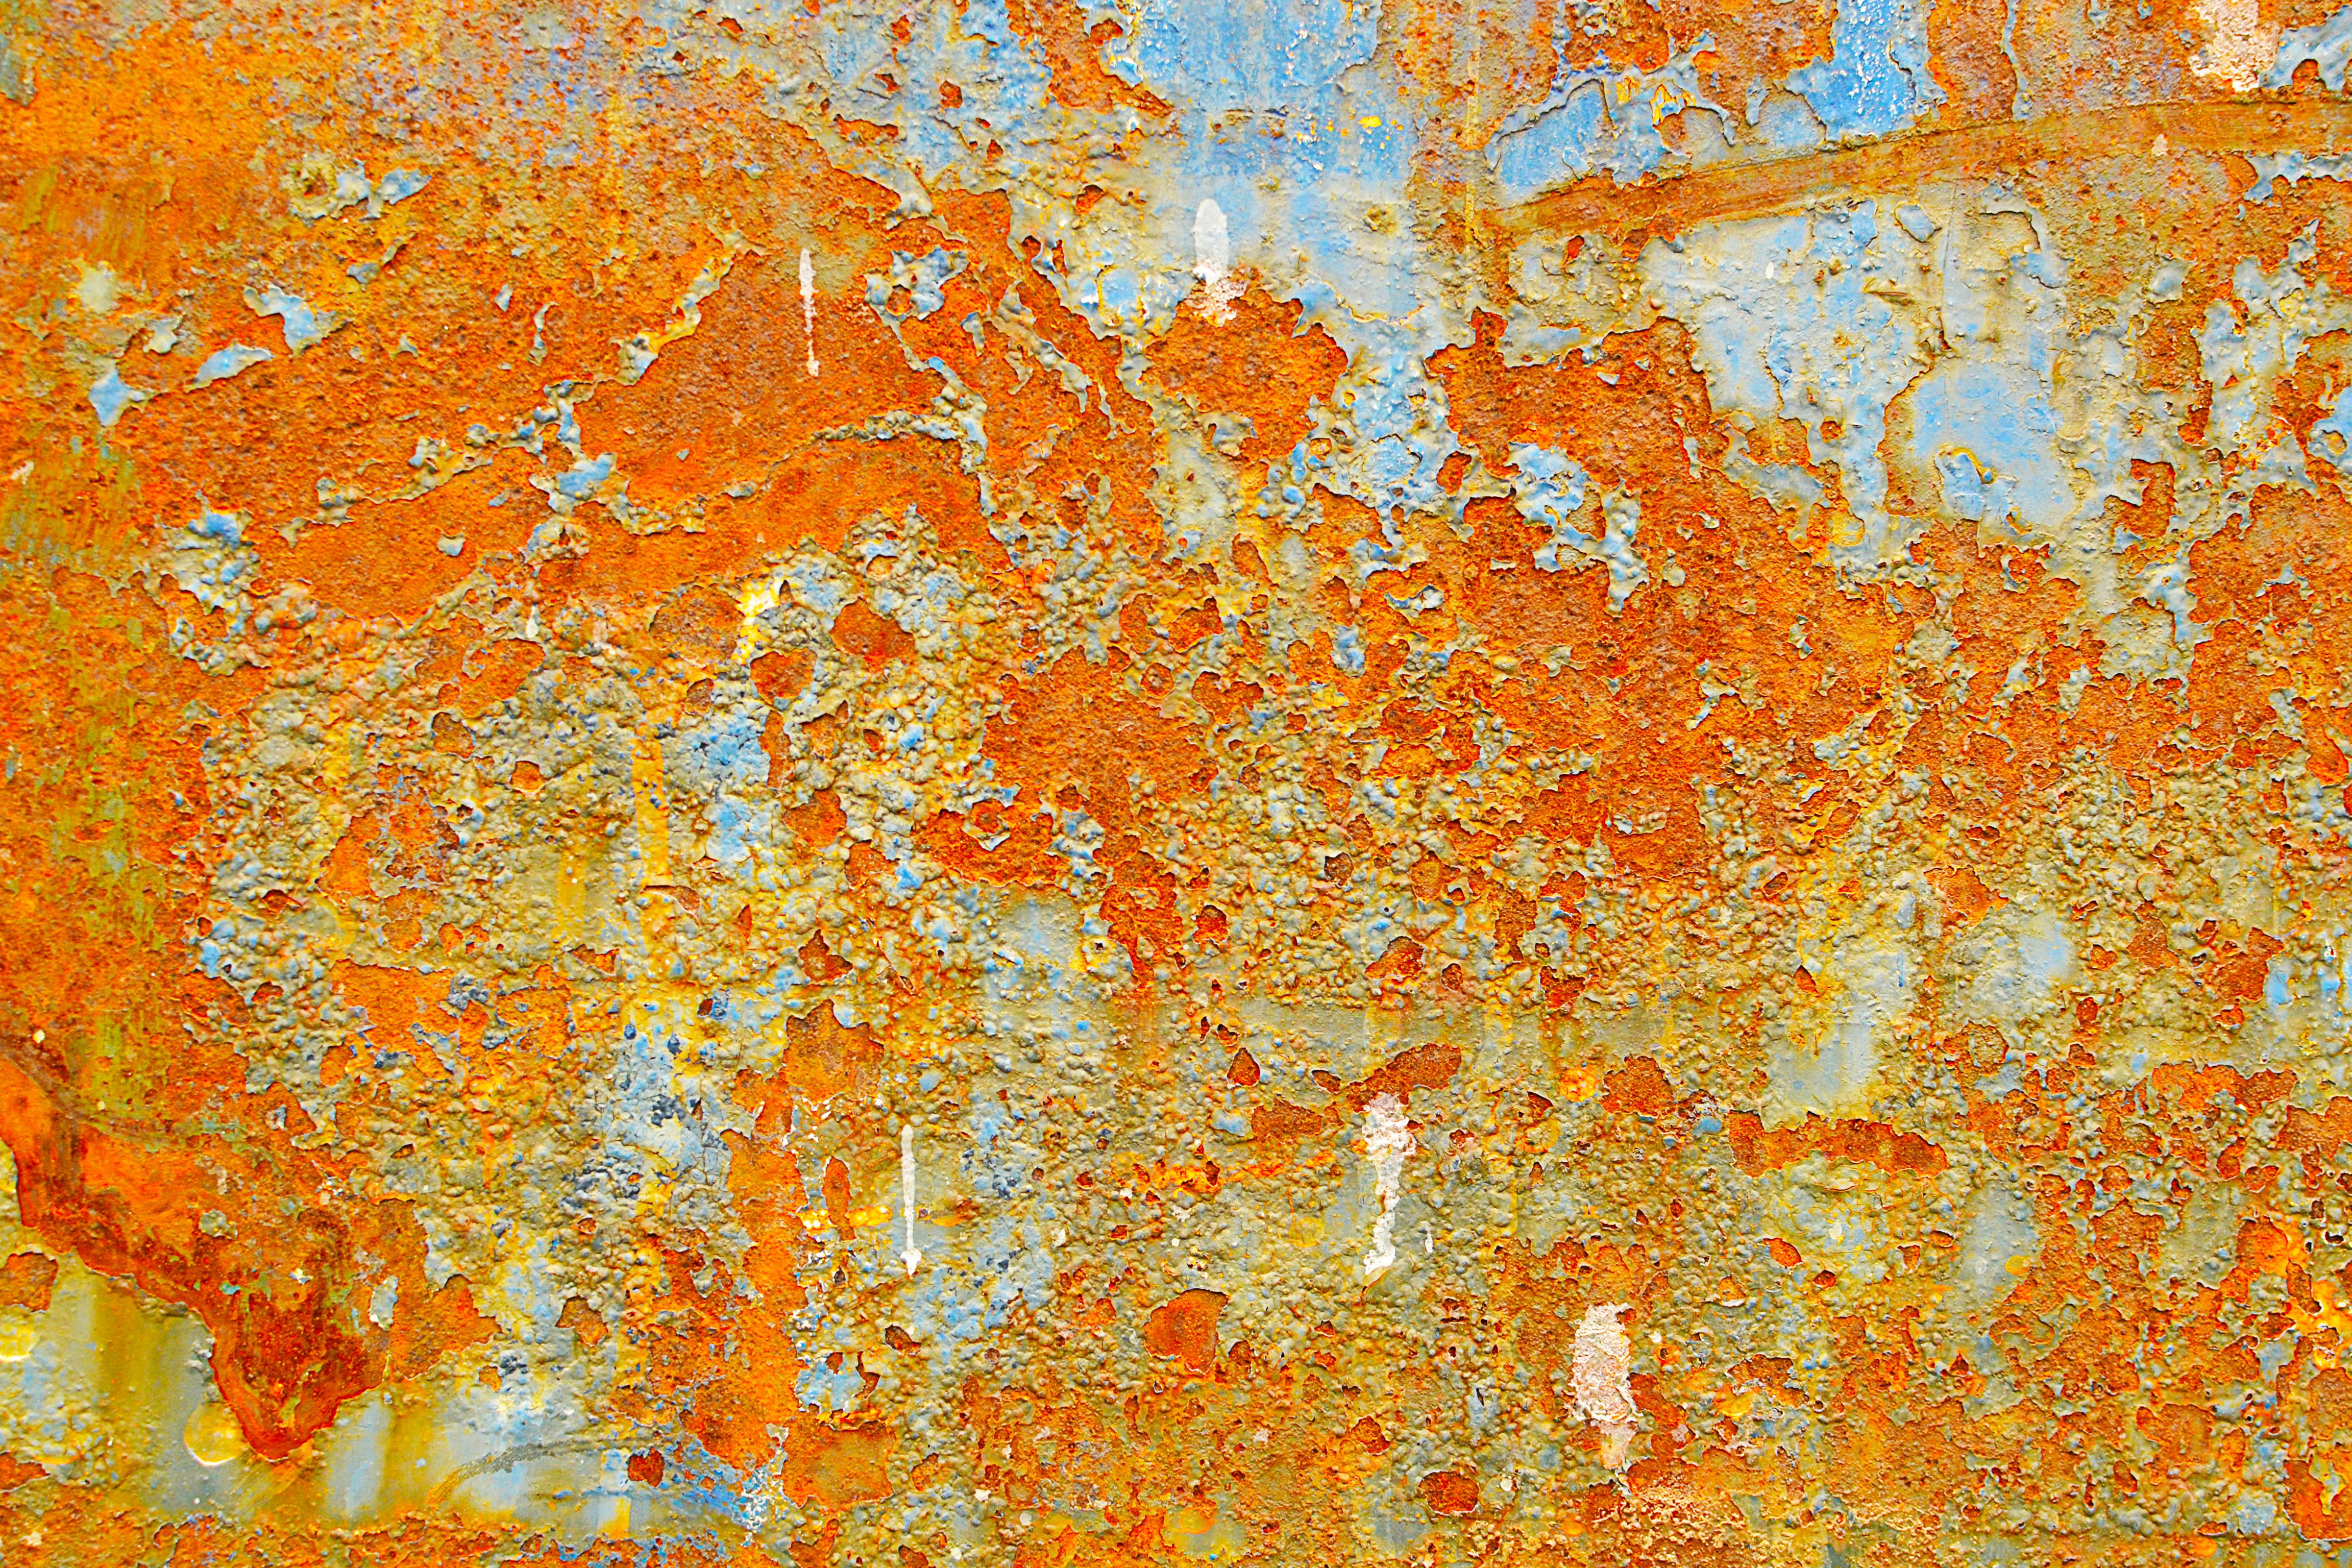 rust colored pattern in - photo #19